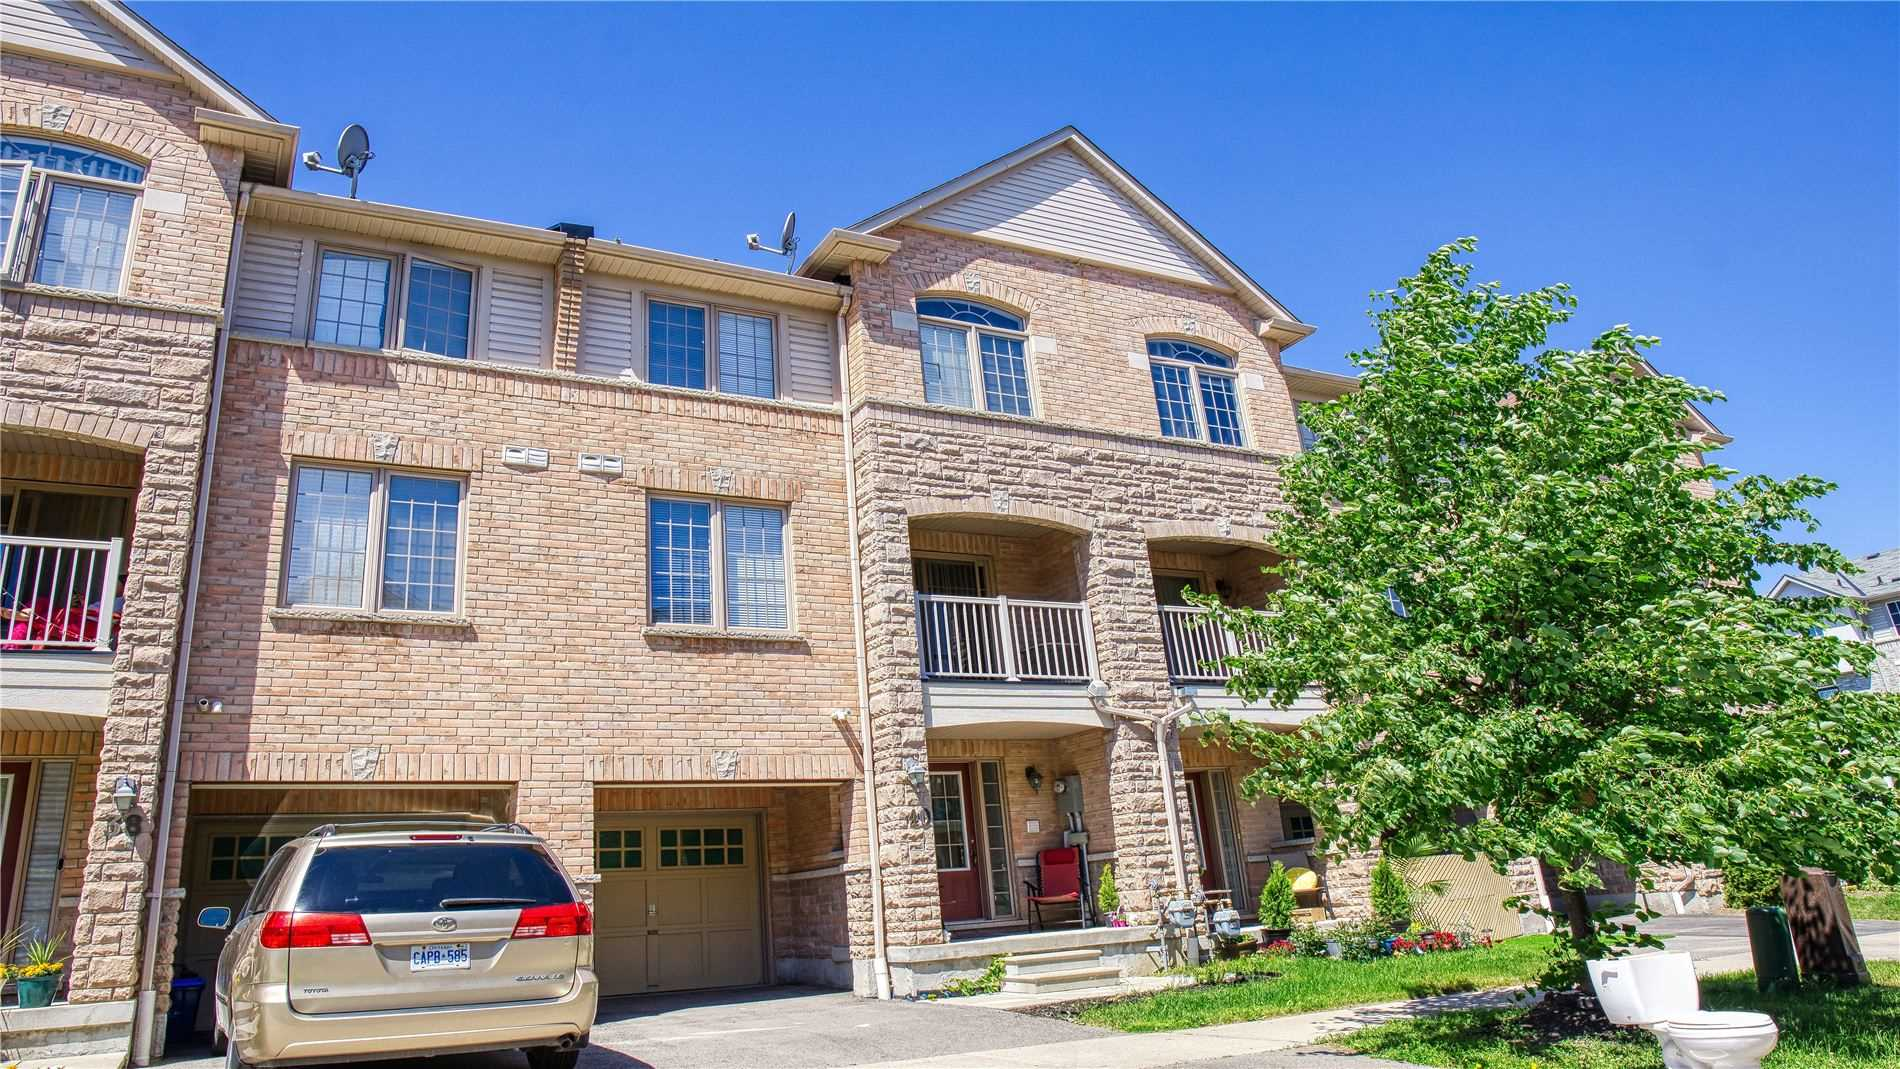 40 Clowes St St, Ajax, Ontario L1Z0K9, 3 Bedrooms Bedrooms, 7 Rooms Rooms,3 BathroomsBathrooms,Att/Row/Twnhouse,For Sale,Clowes St,E4797124